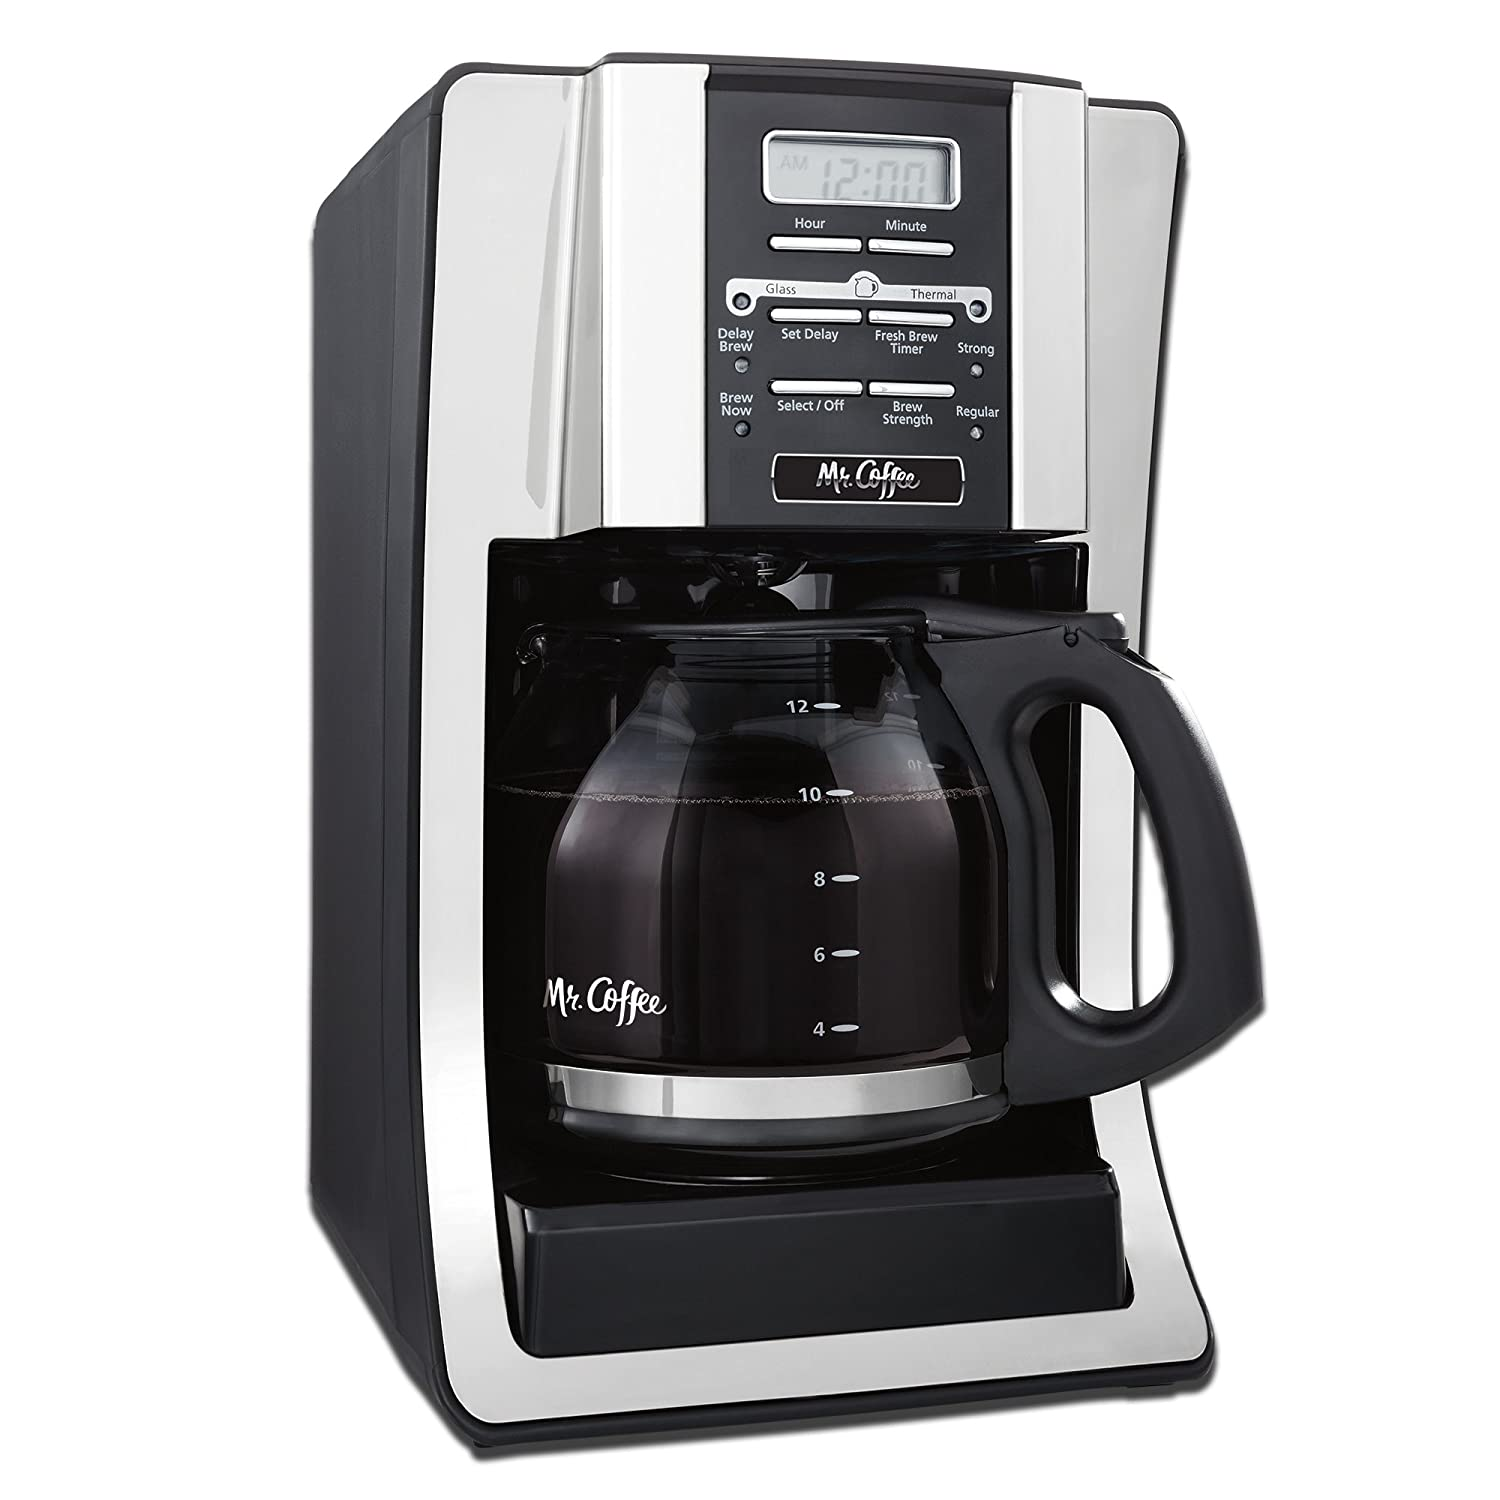 Mr. Coffee BVMC-SJX33GT 12-Cup Programmable Coffeemaker, Chrome BVMC-SJX33GT-AM